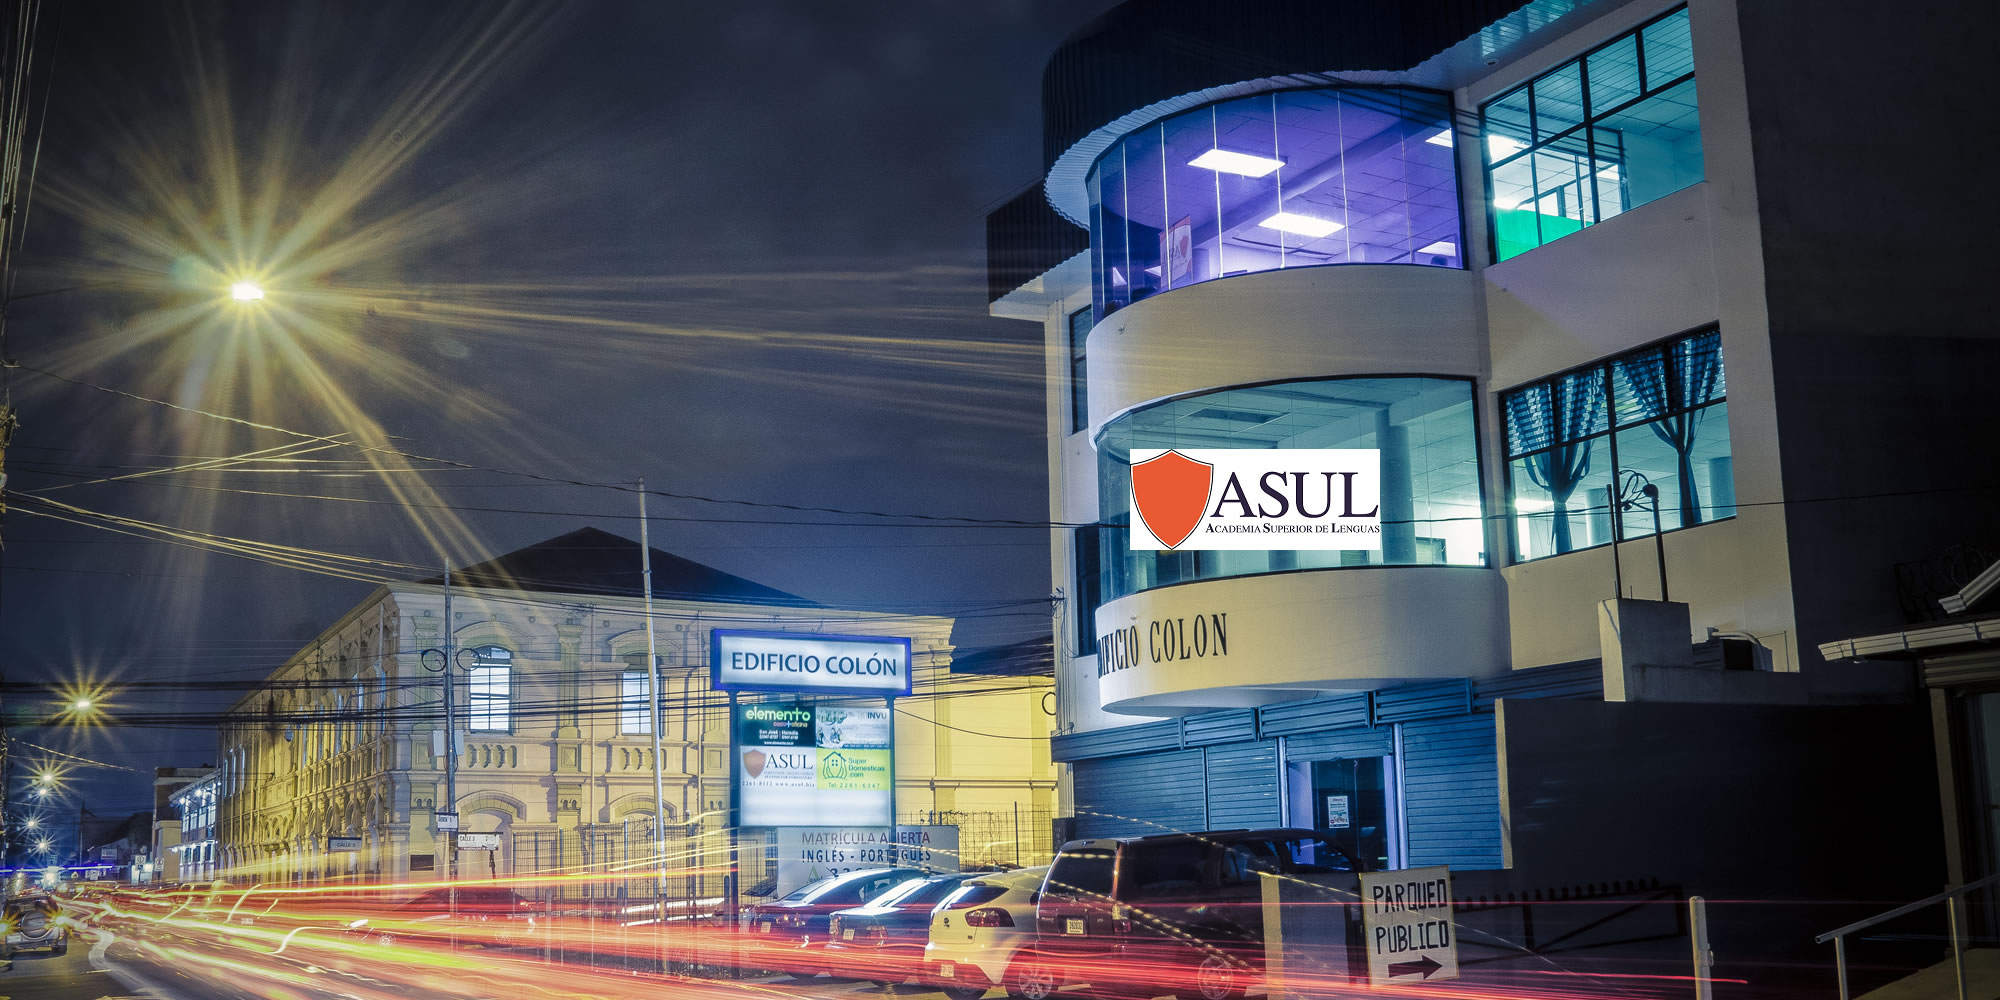 edificio-academia-asul-de-lenguas-en-heredia-costa-rica